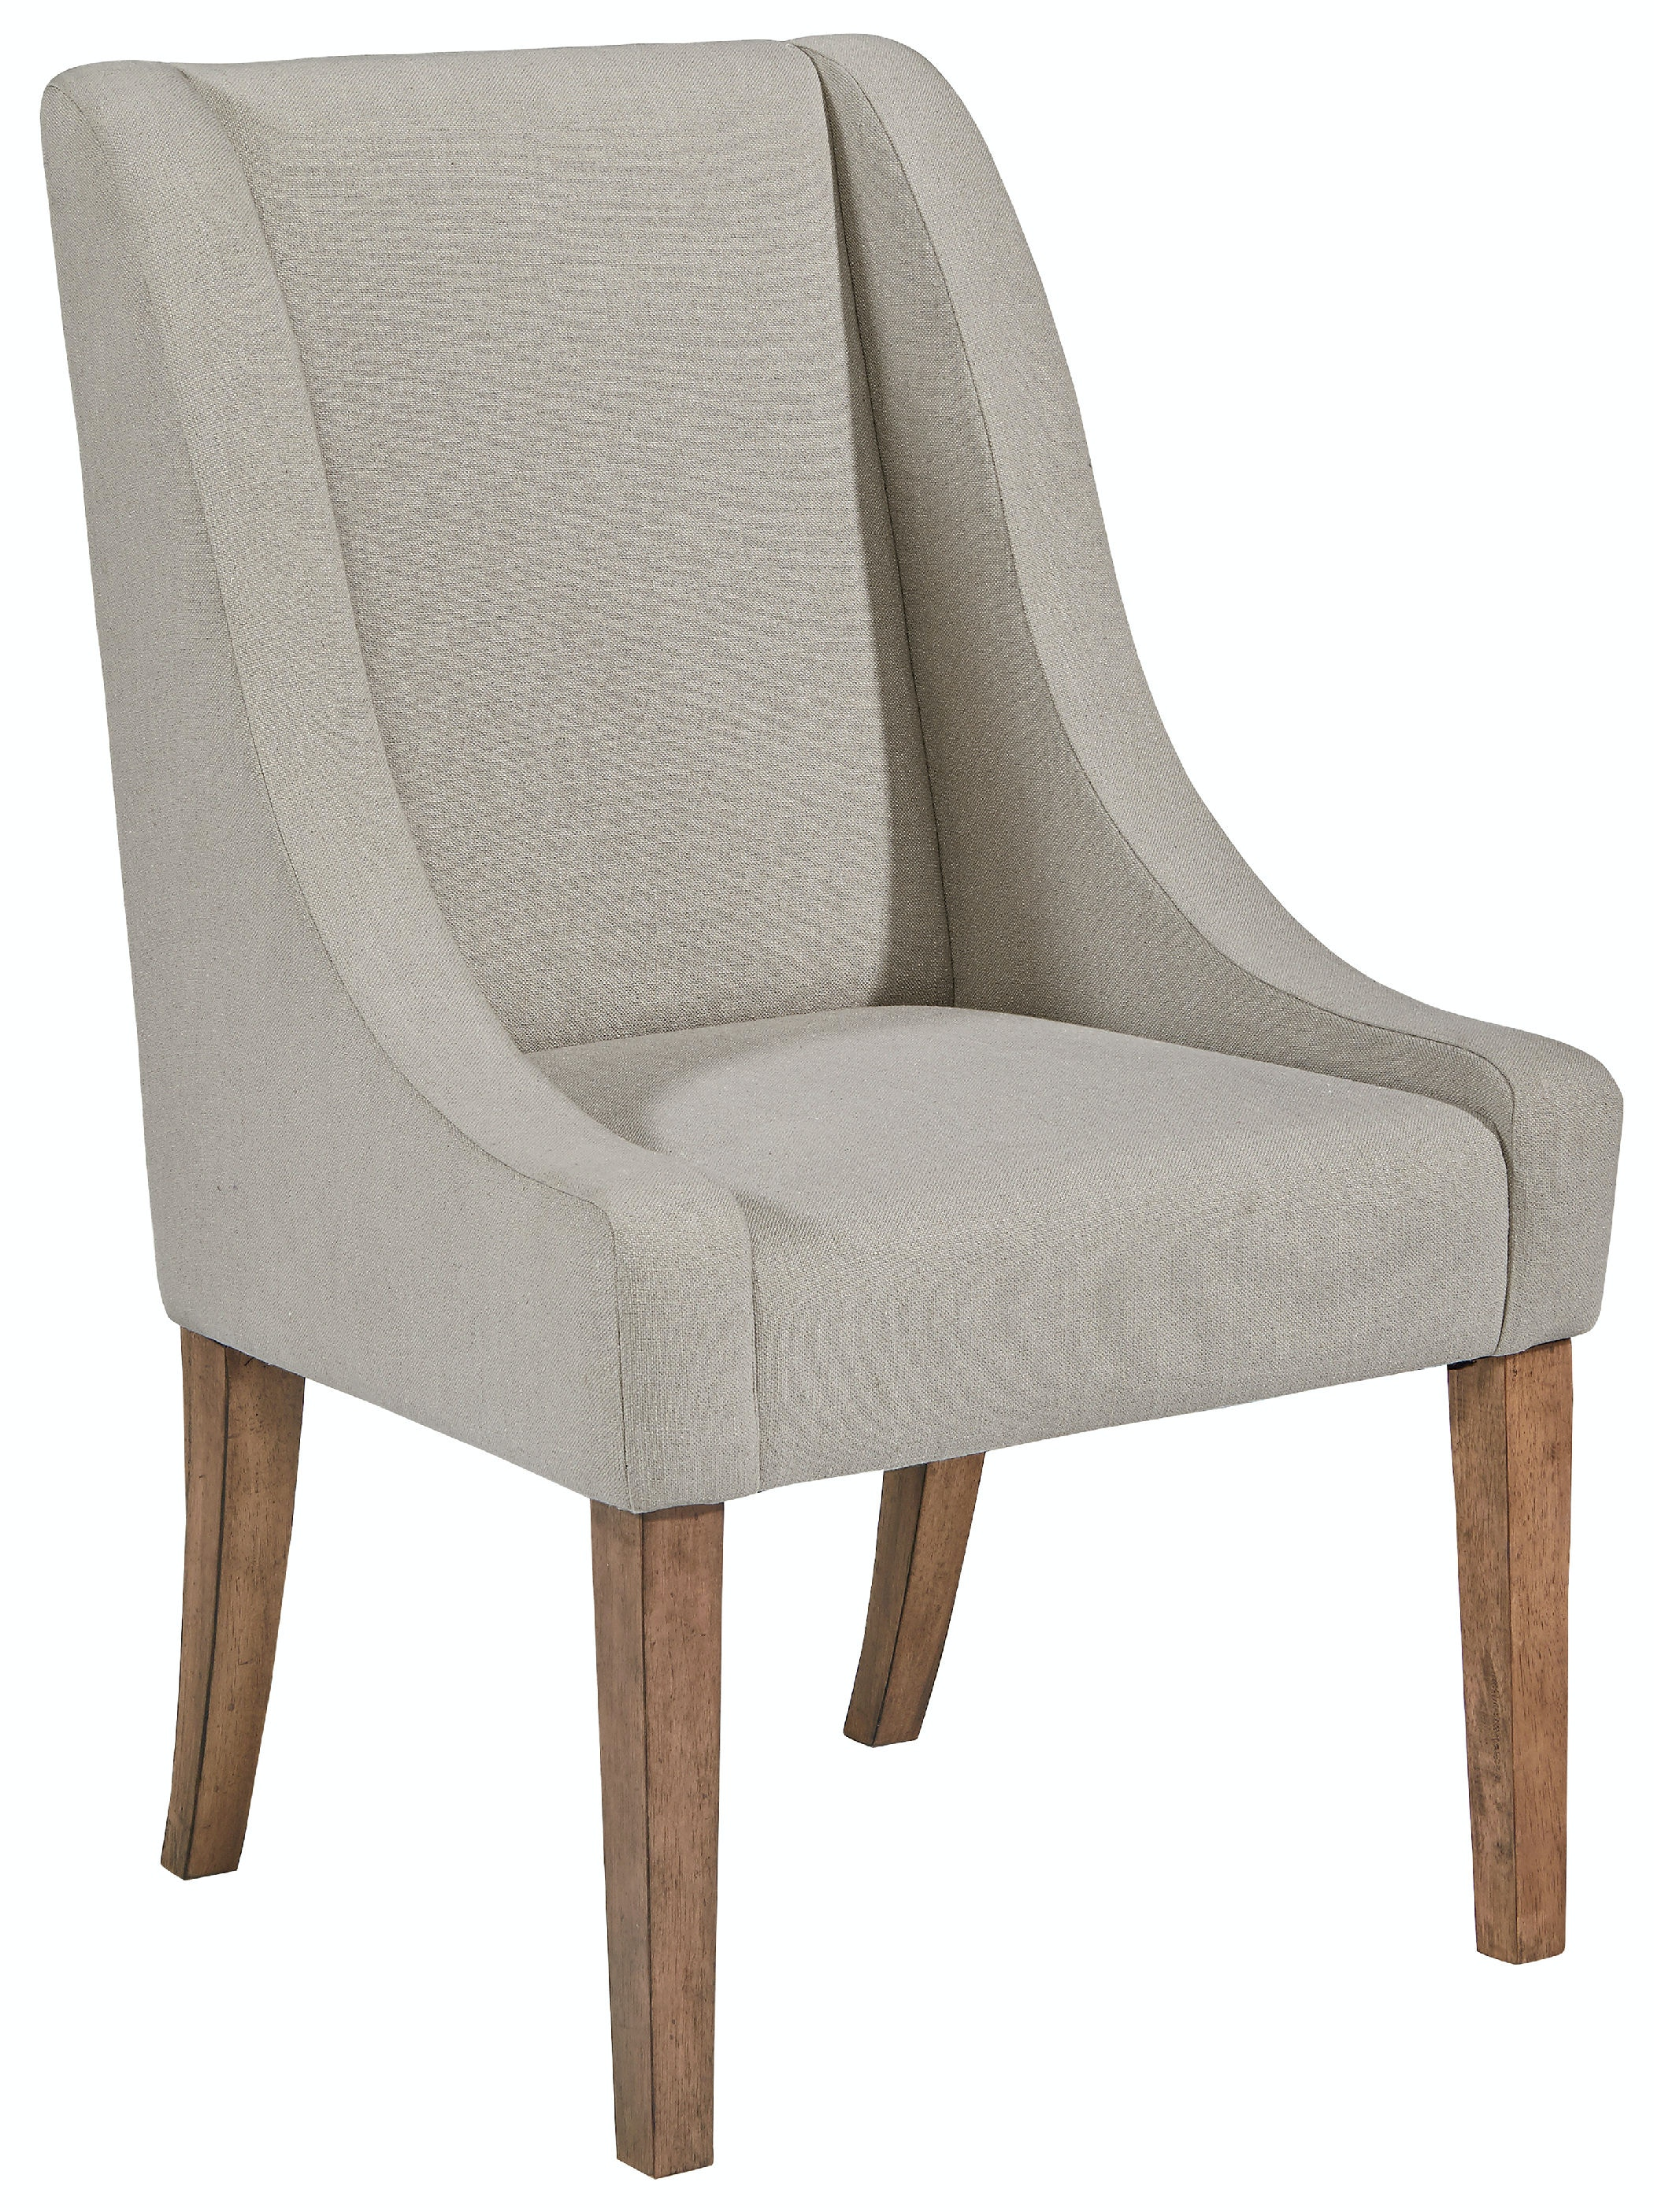 Magnolia Home   Demi Wing Upholstered Side Chair   GREY FLANNEL ST:463594